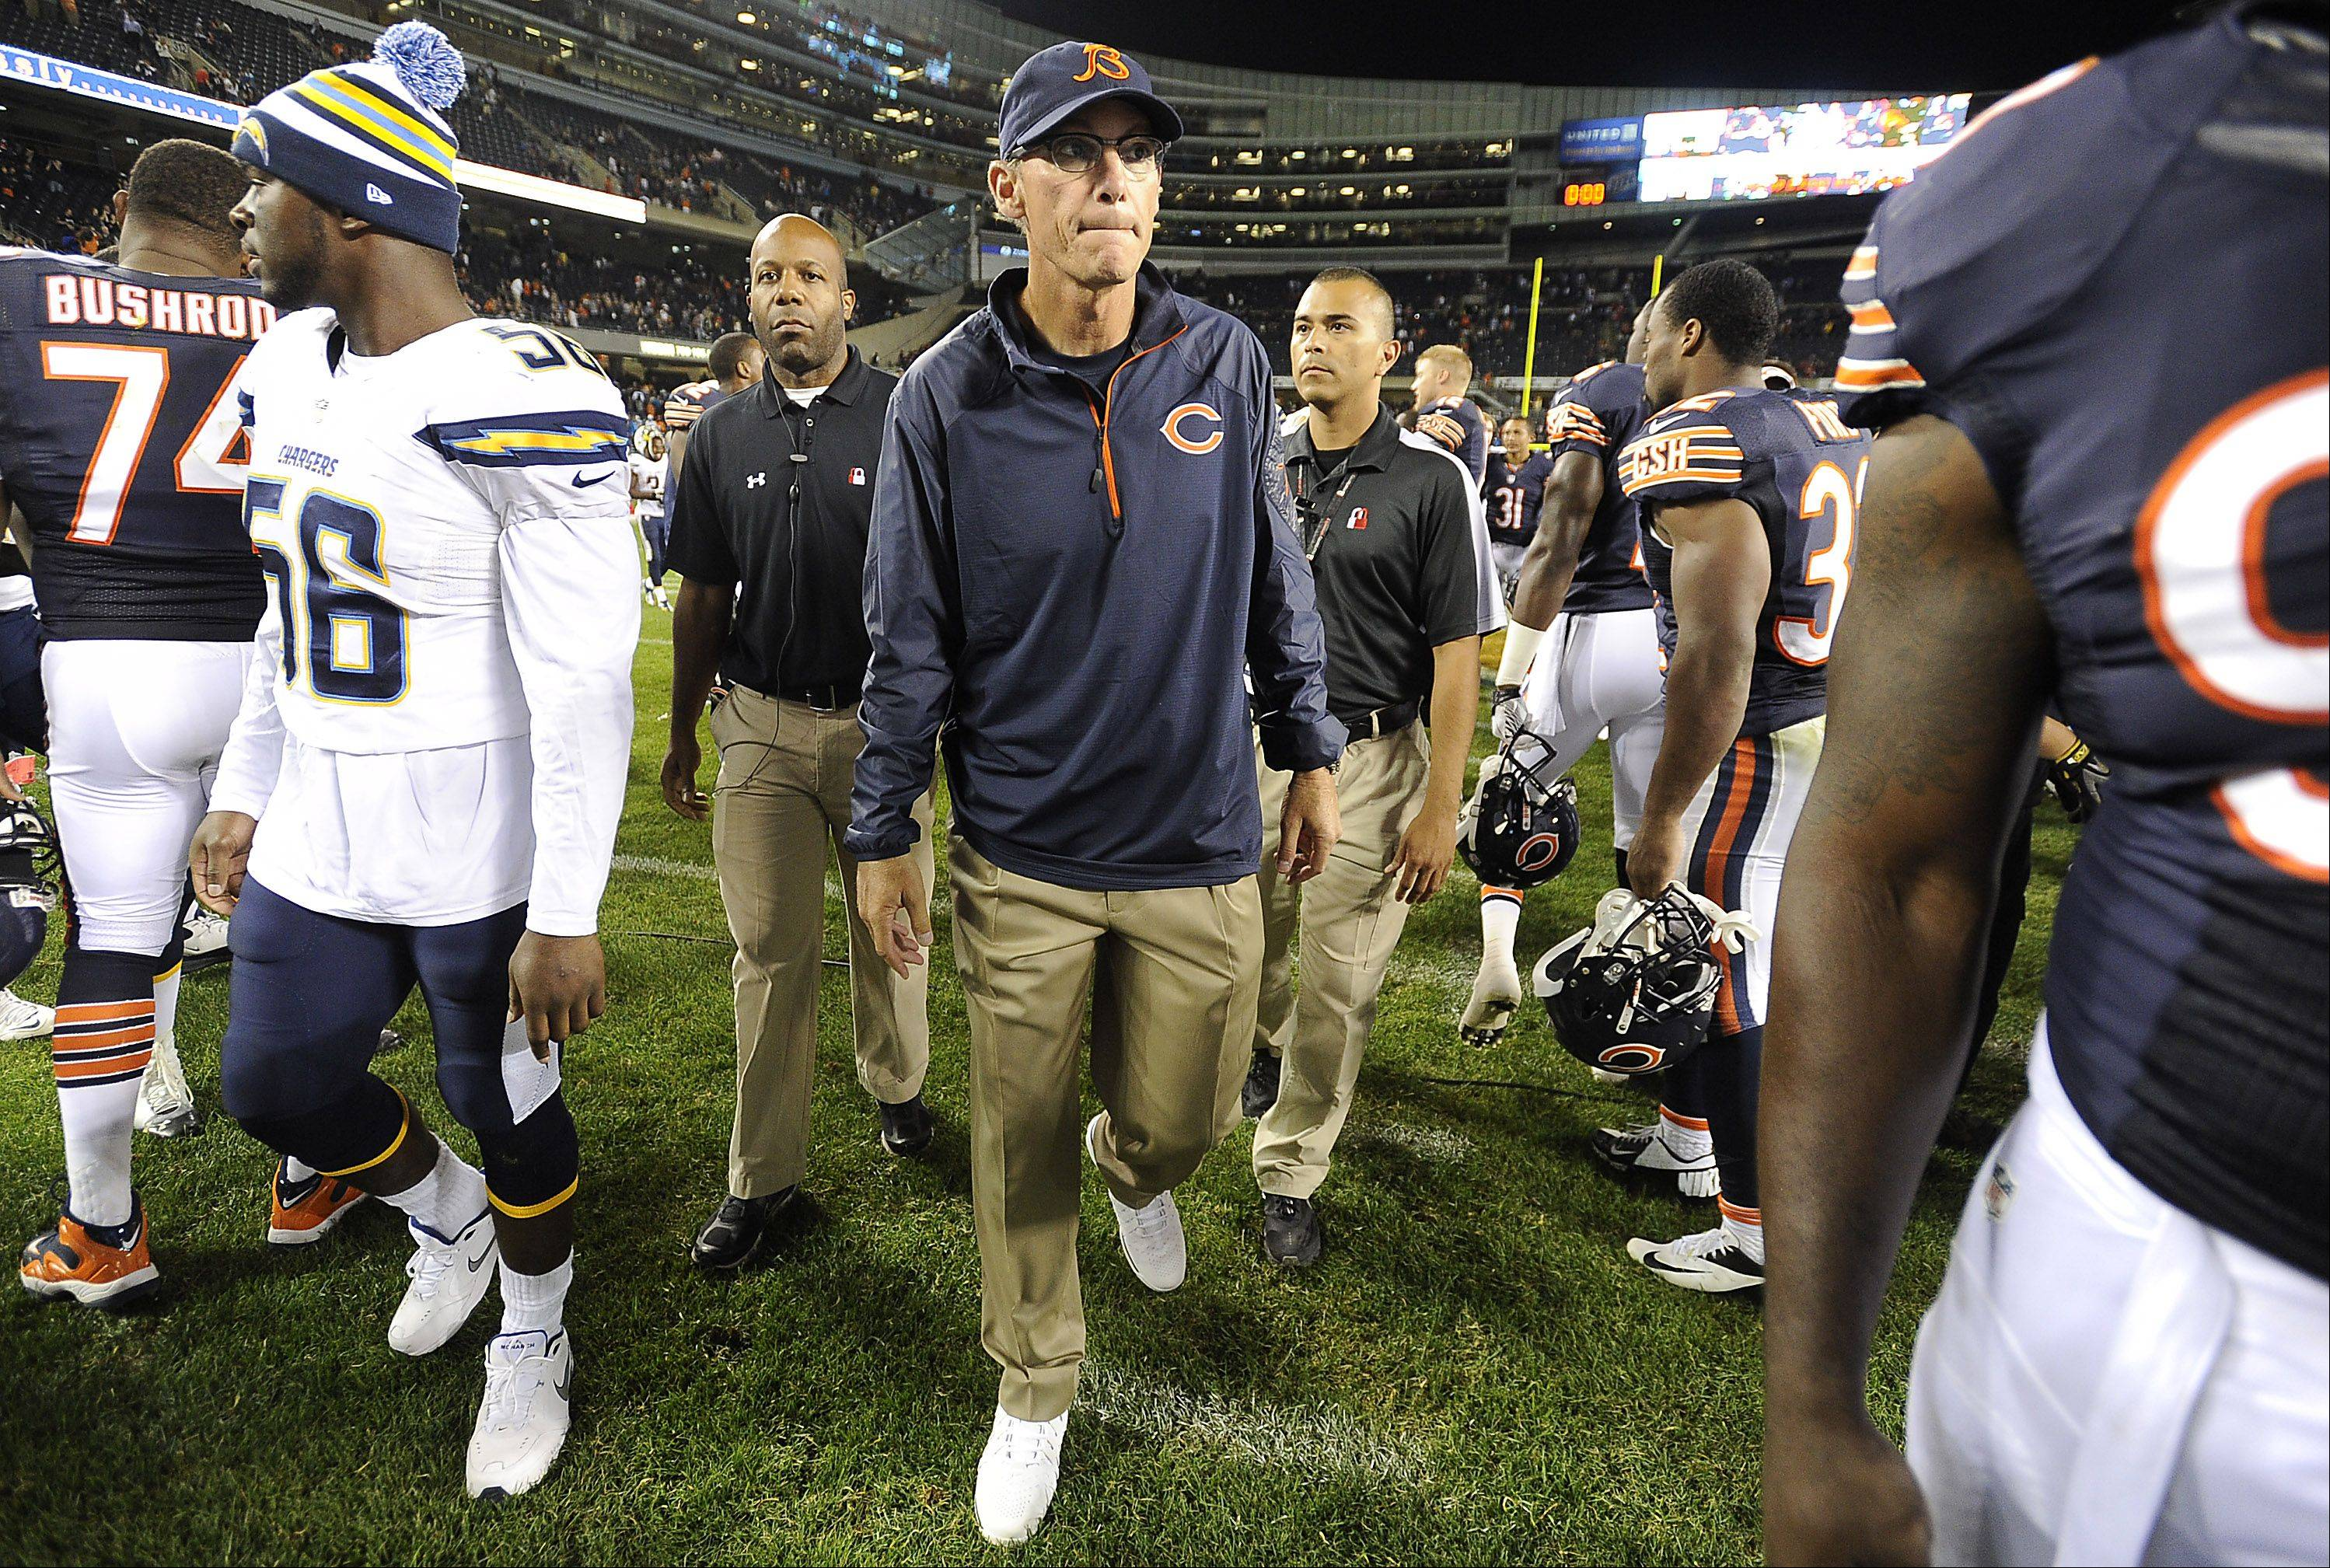 Chicago Bears head coach Marc Trestman walks off the field after the game.